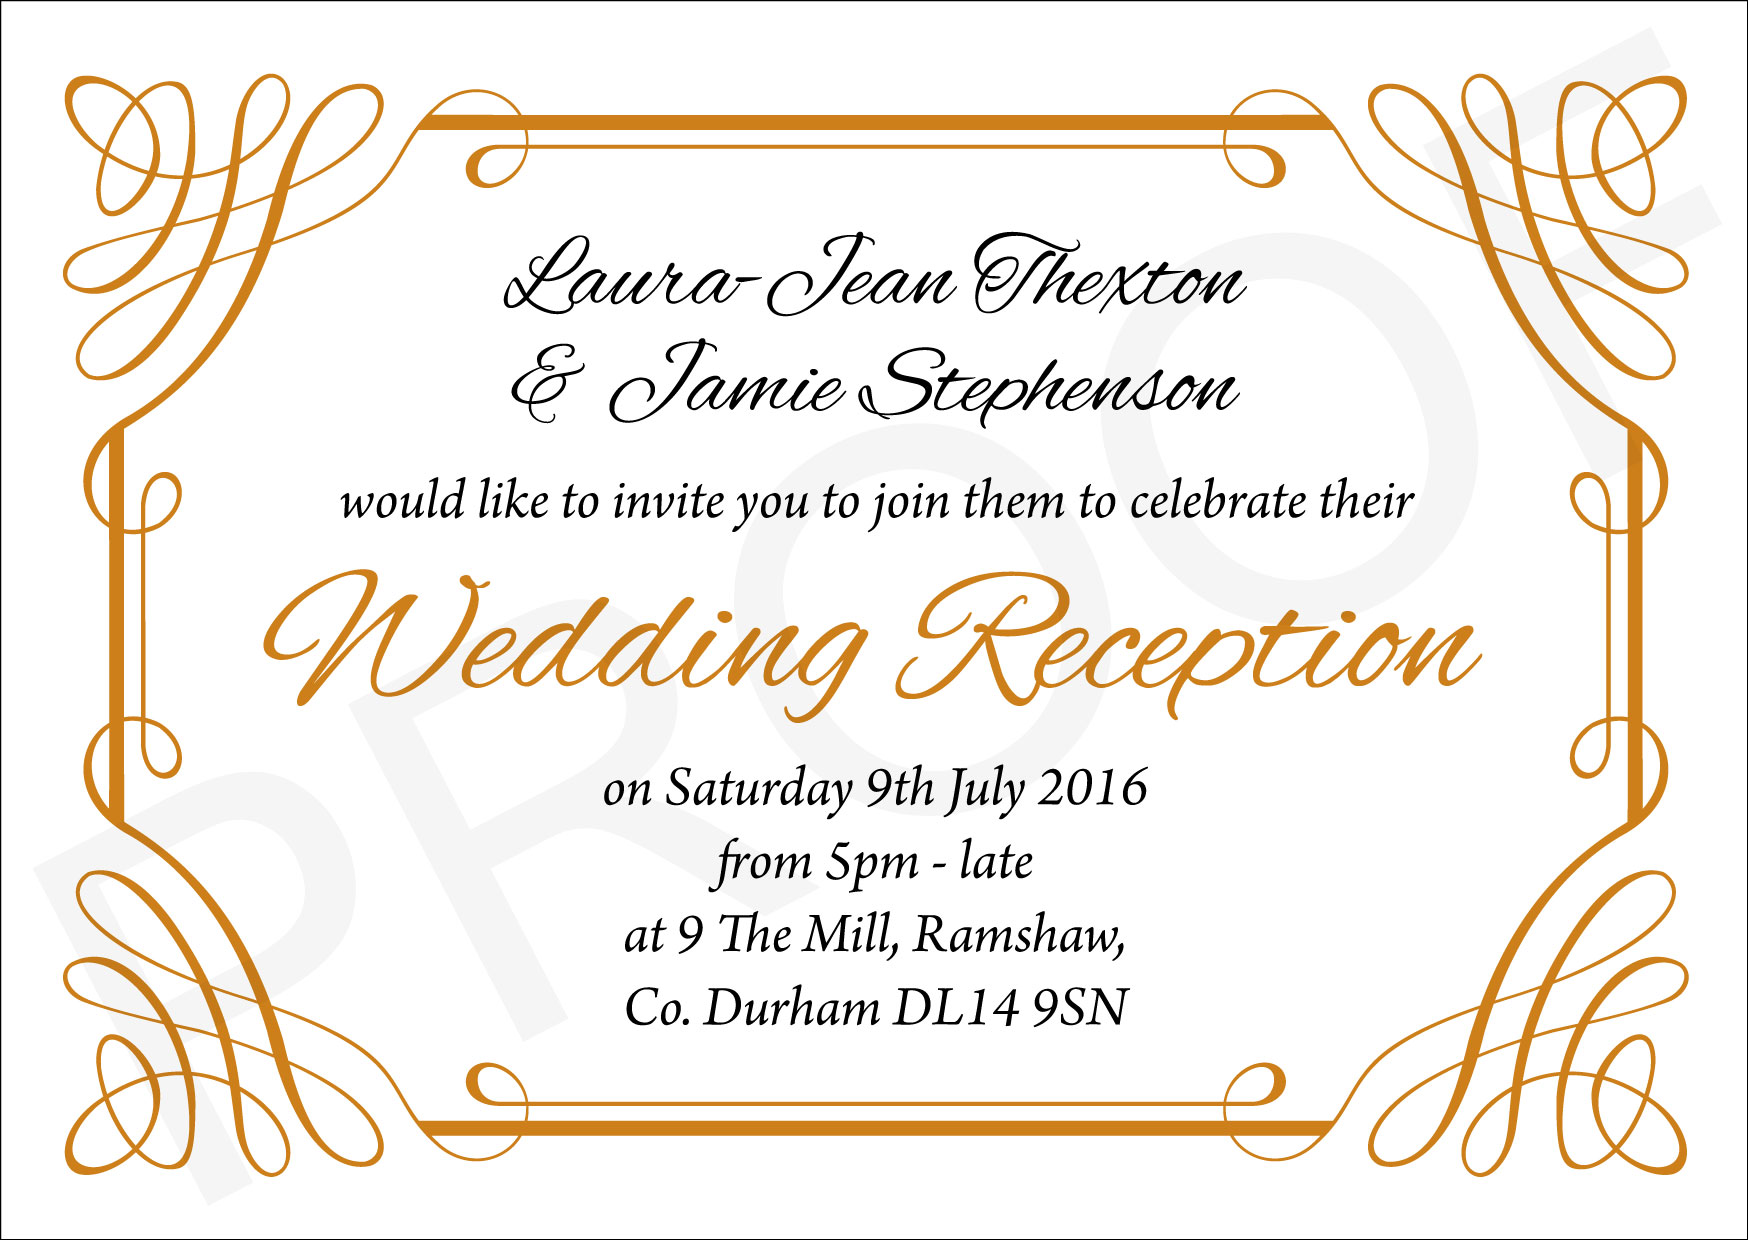 WEDDING-LJ-THEXTON